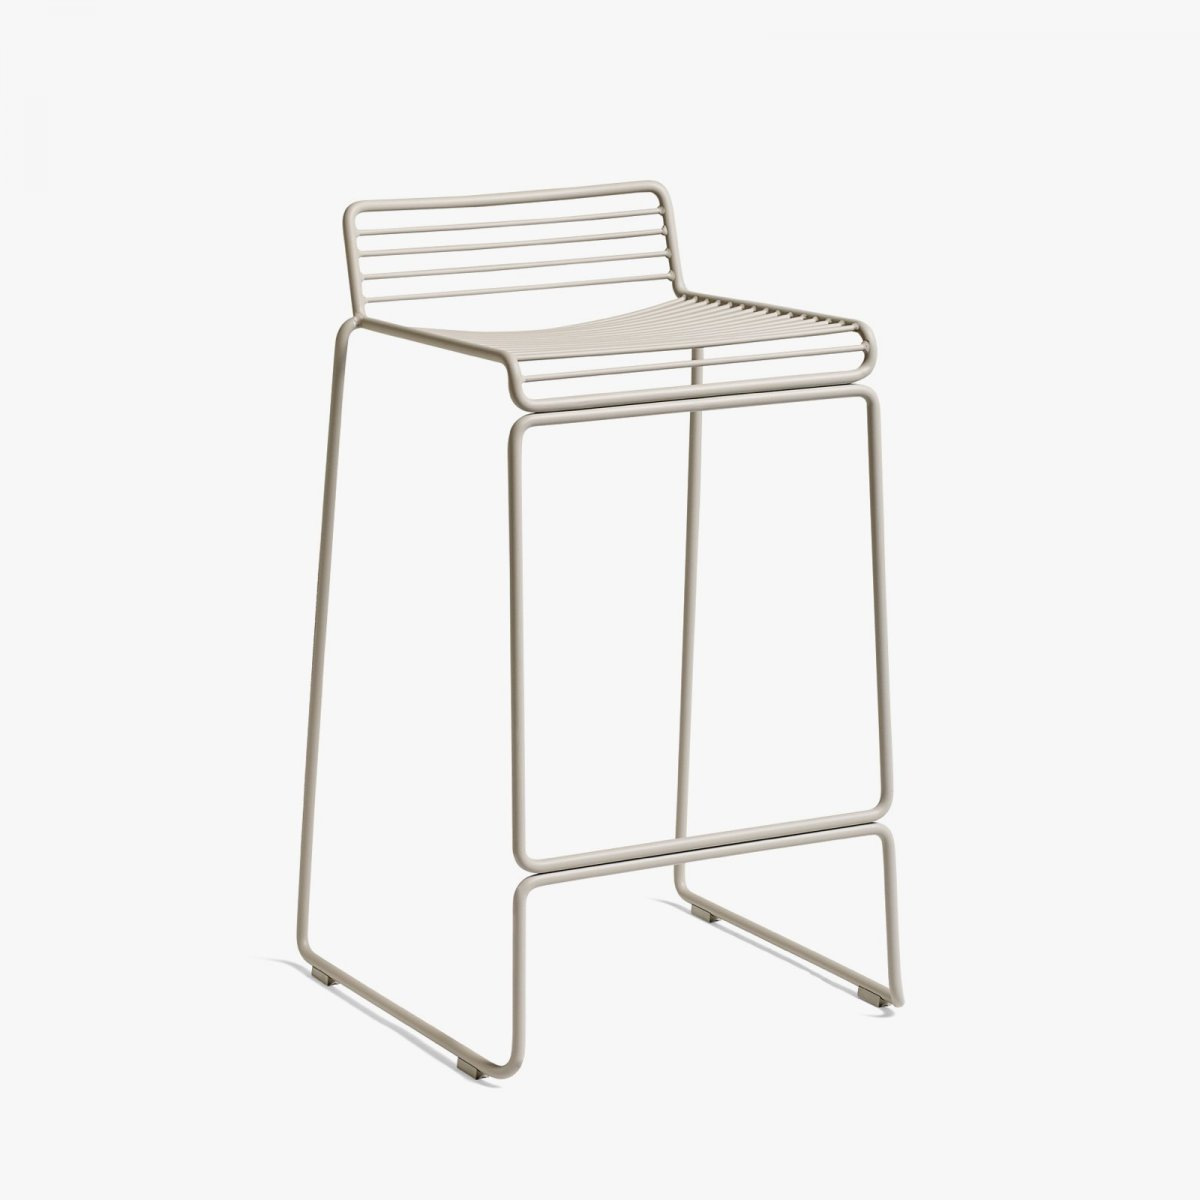 Hee Bar Stool, high, beige.